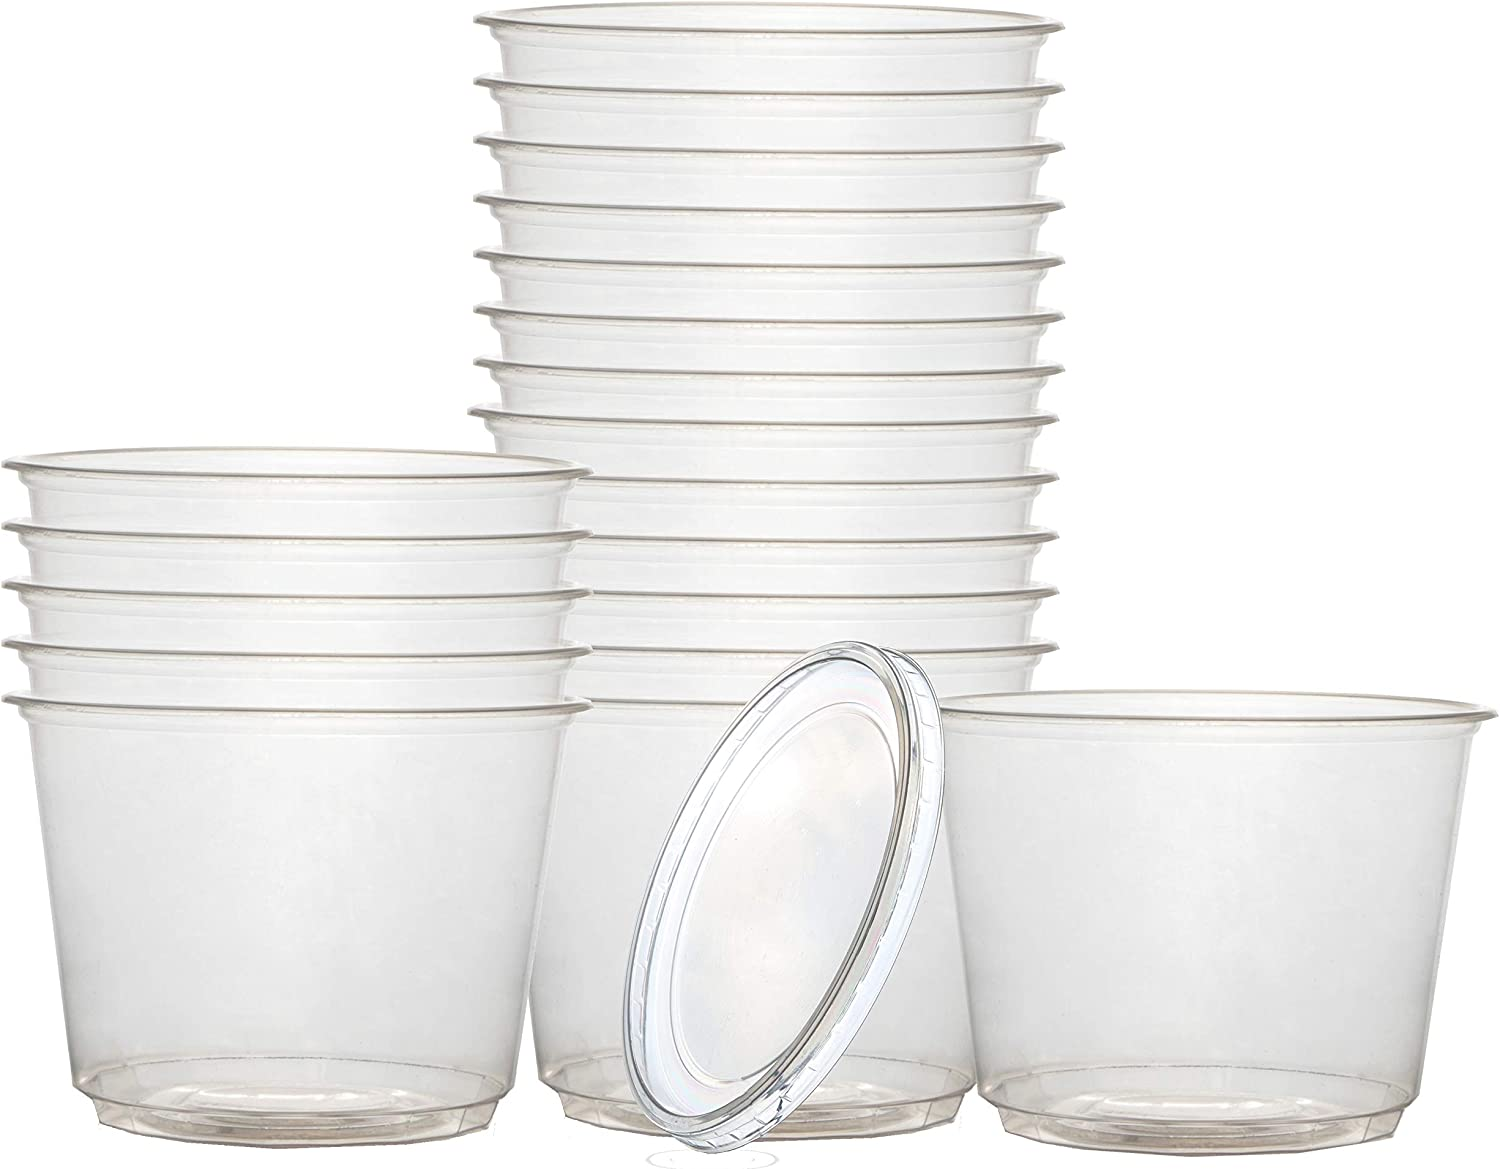 DISPOSABLE 24 Oz. PLASTIC FOOD STORAGE CONTAINERS WITH LIDS – 45 COUNT – BPA FREE – MICROWAVE SAFE – CLEAR DISPOSABLE DELI CONTAINERS – FREEZER MEAL PREP REUSABLE RESTAURANT STORAGE CONTAINERS